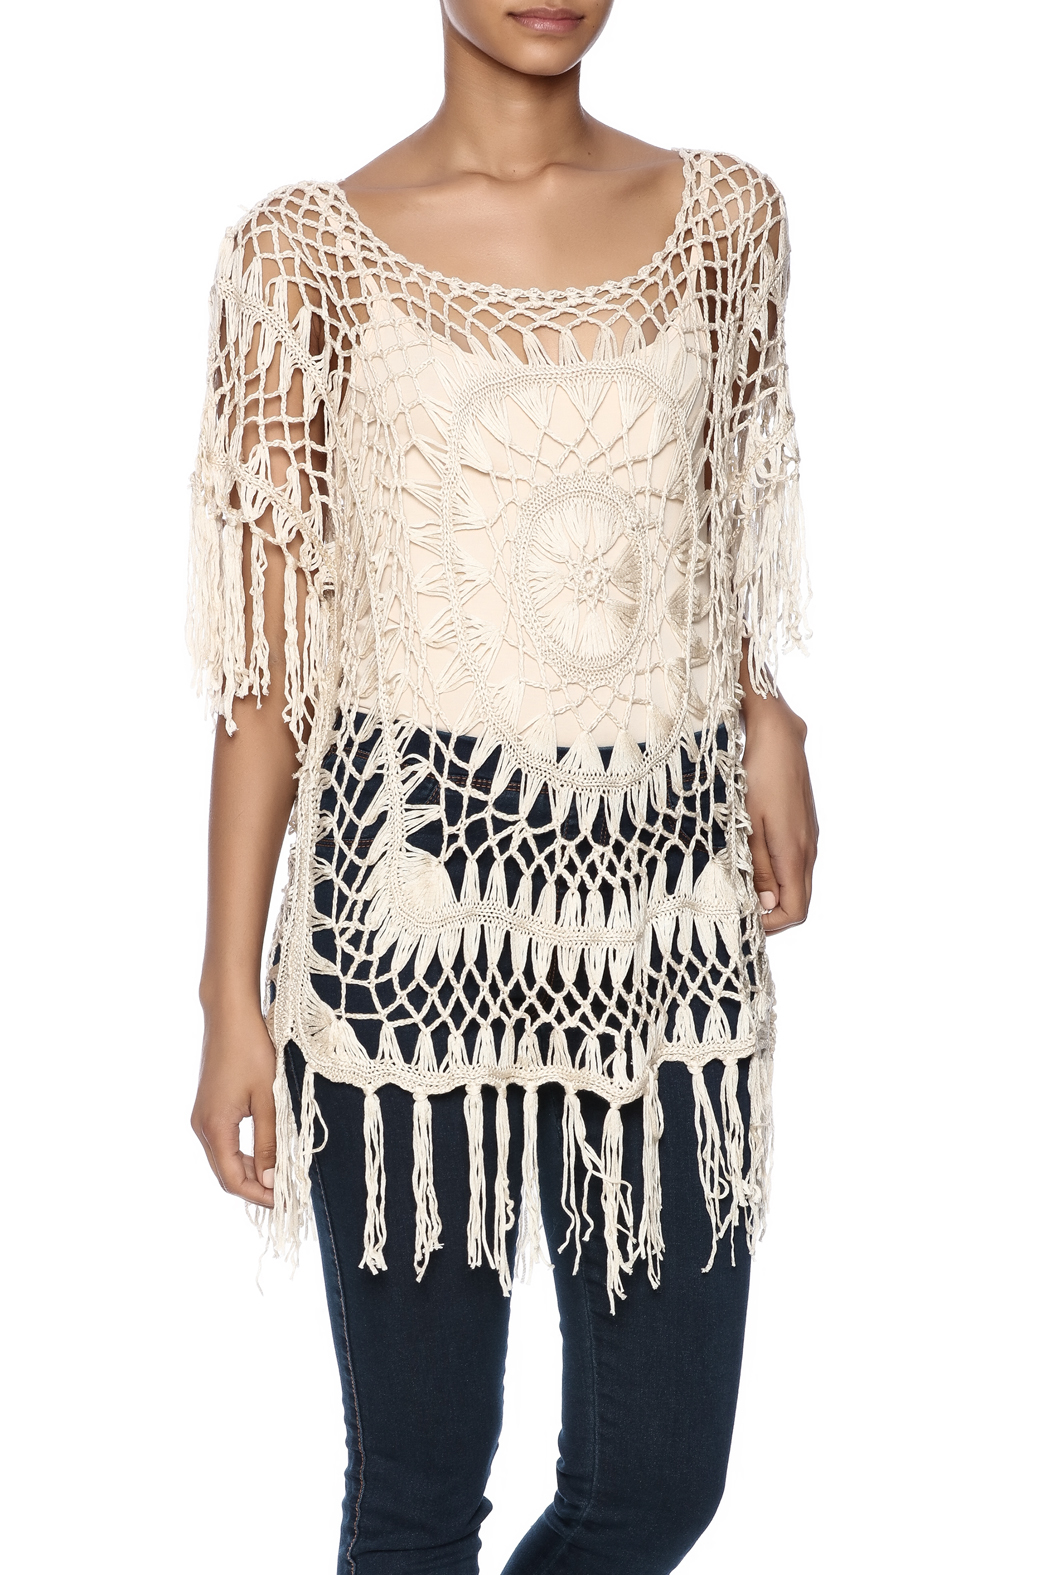 ae28b98709faa India Boutique Exquisite Crochet Top from Florida by Ocean Bri ...